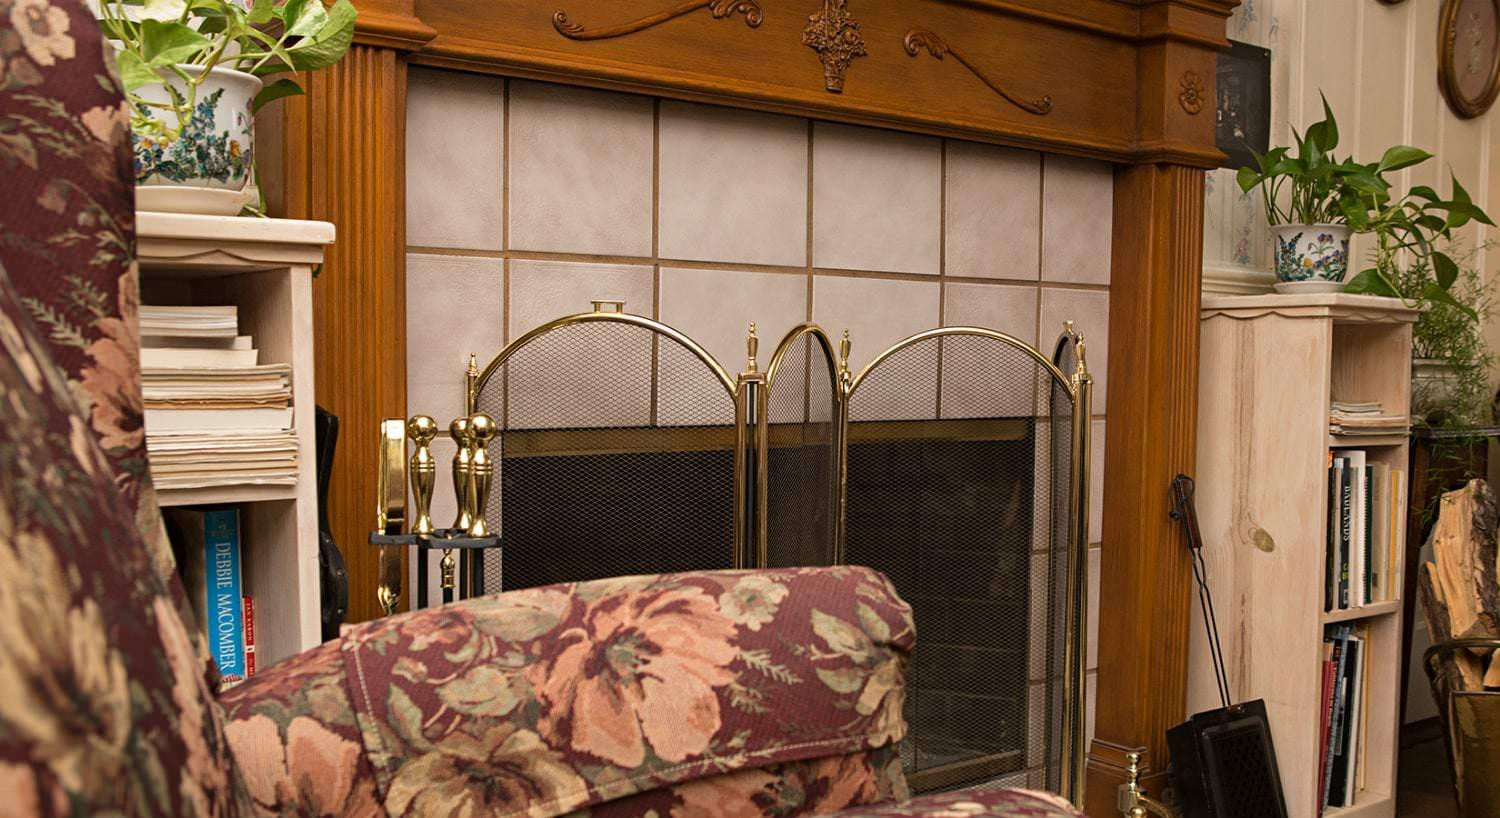 Close-up view of the sitting room fireplace with white tile, stained wood mantel surround, and gold screen